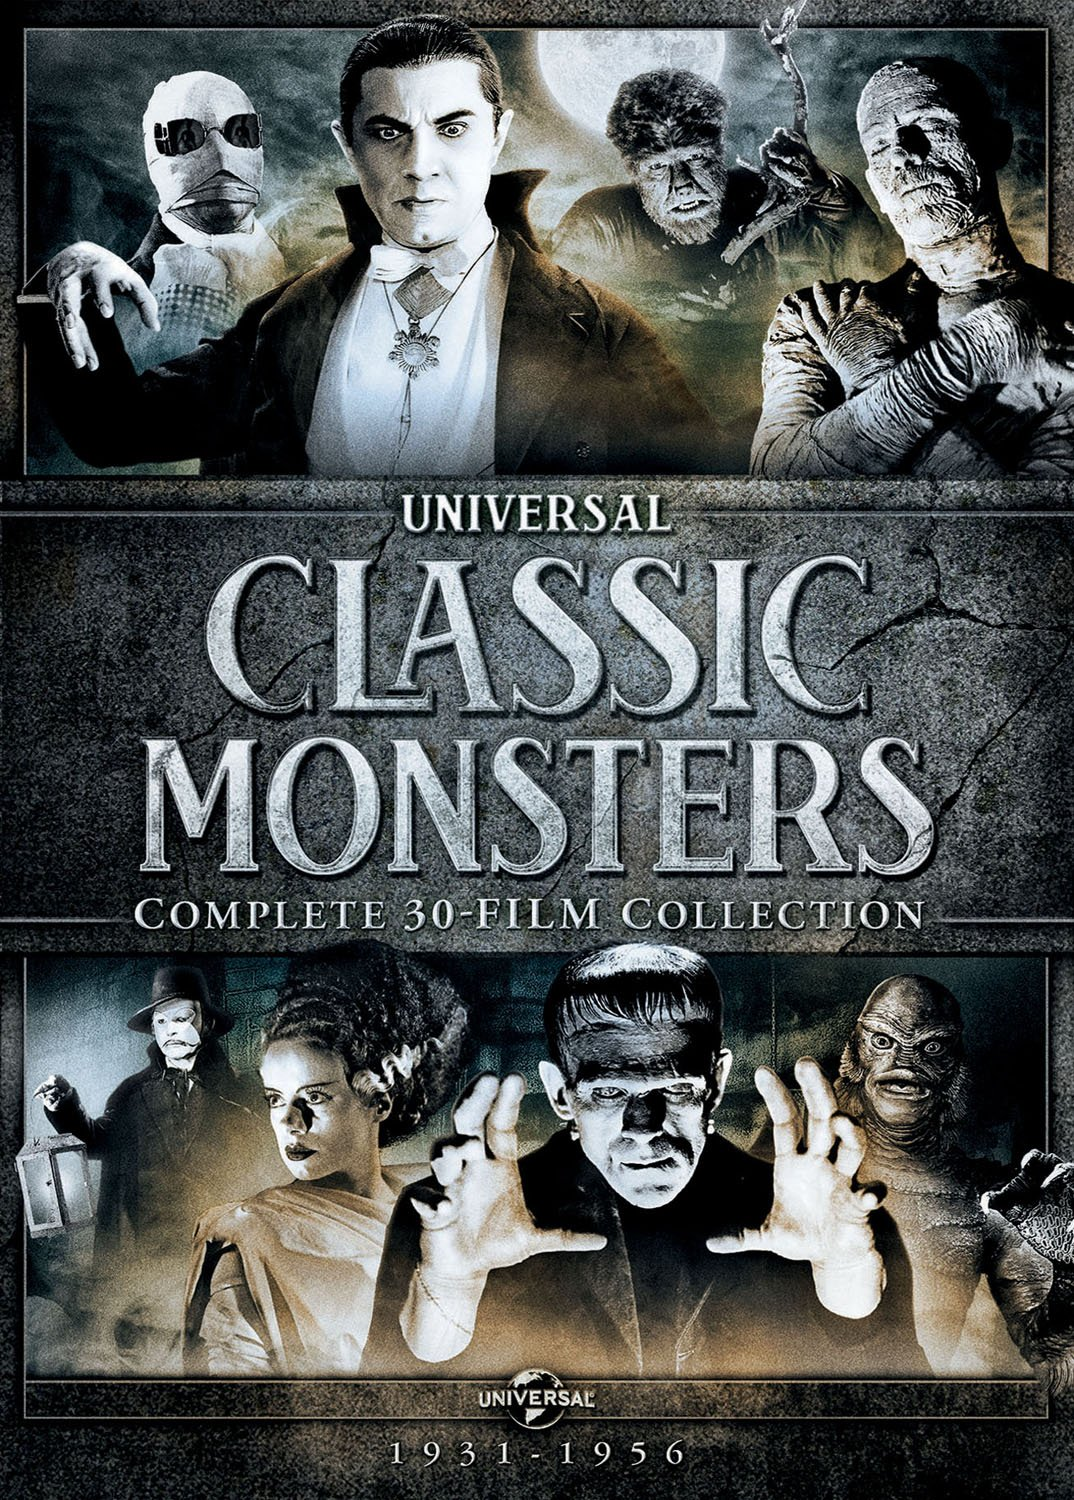 Amazon Com Classic Monsters Complete 30 Film Collection Bela Lugosi Boris Karloff Claude Rains Lon Chaney Jr Hal Mohr W Howard Greene Arthur Lubin Carl Laemmle Jr Bernard B Brown Garrett Fort John L